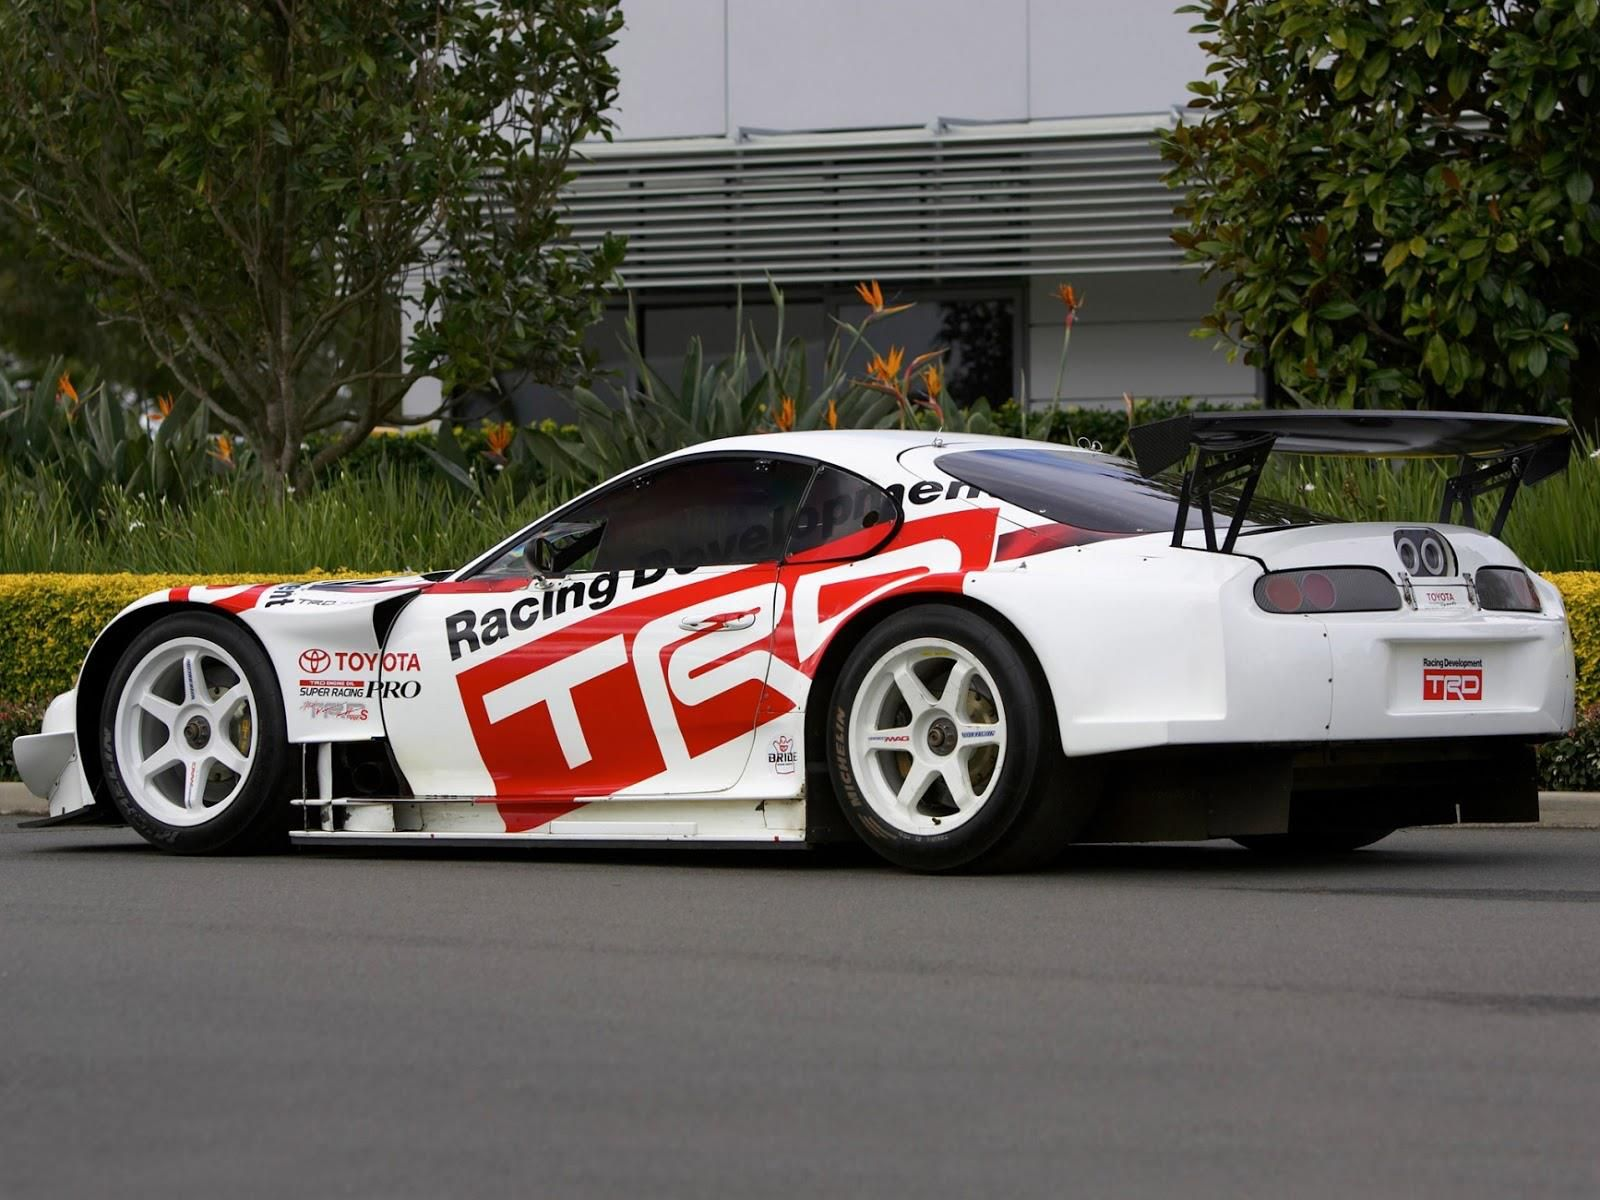 Best Japanese Racing Cars Images On Pinterest Race Cars